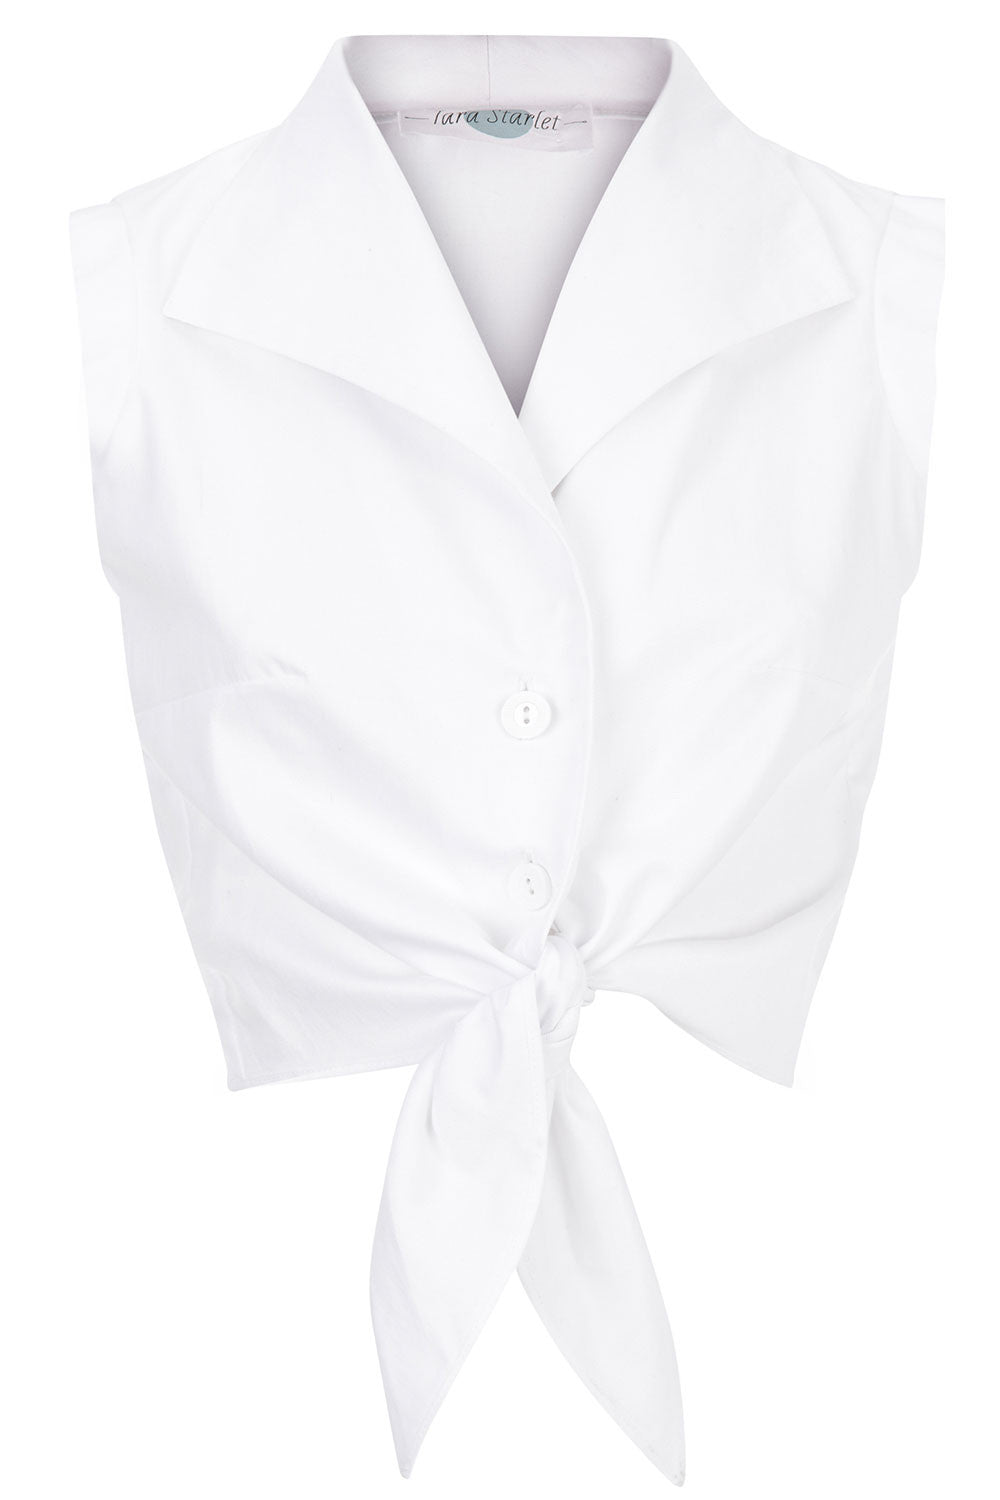 The Tie-front Shirt - White